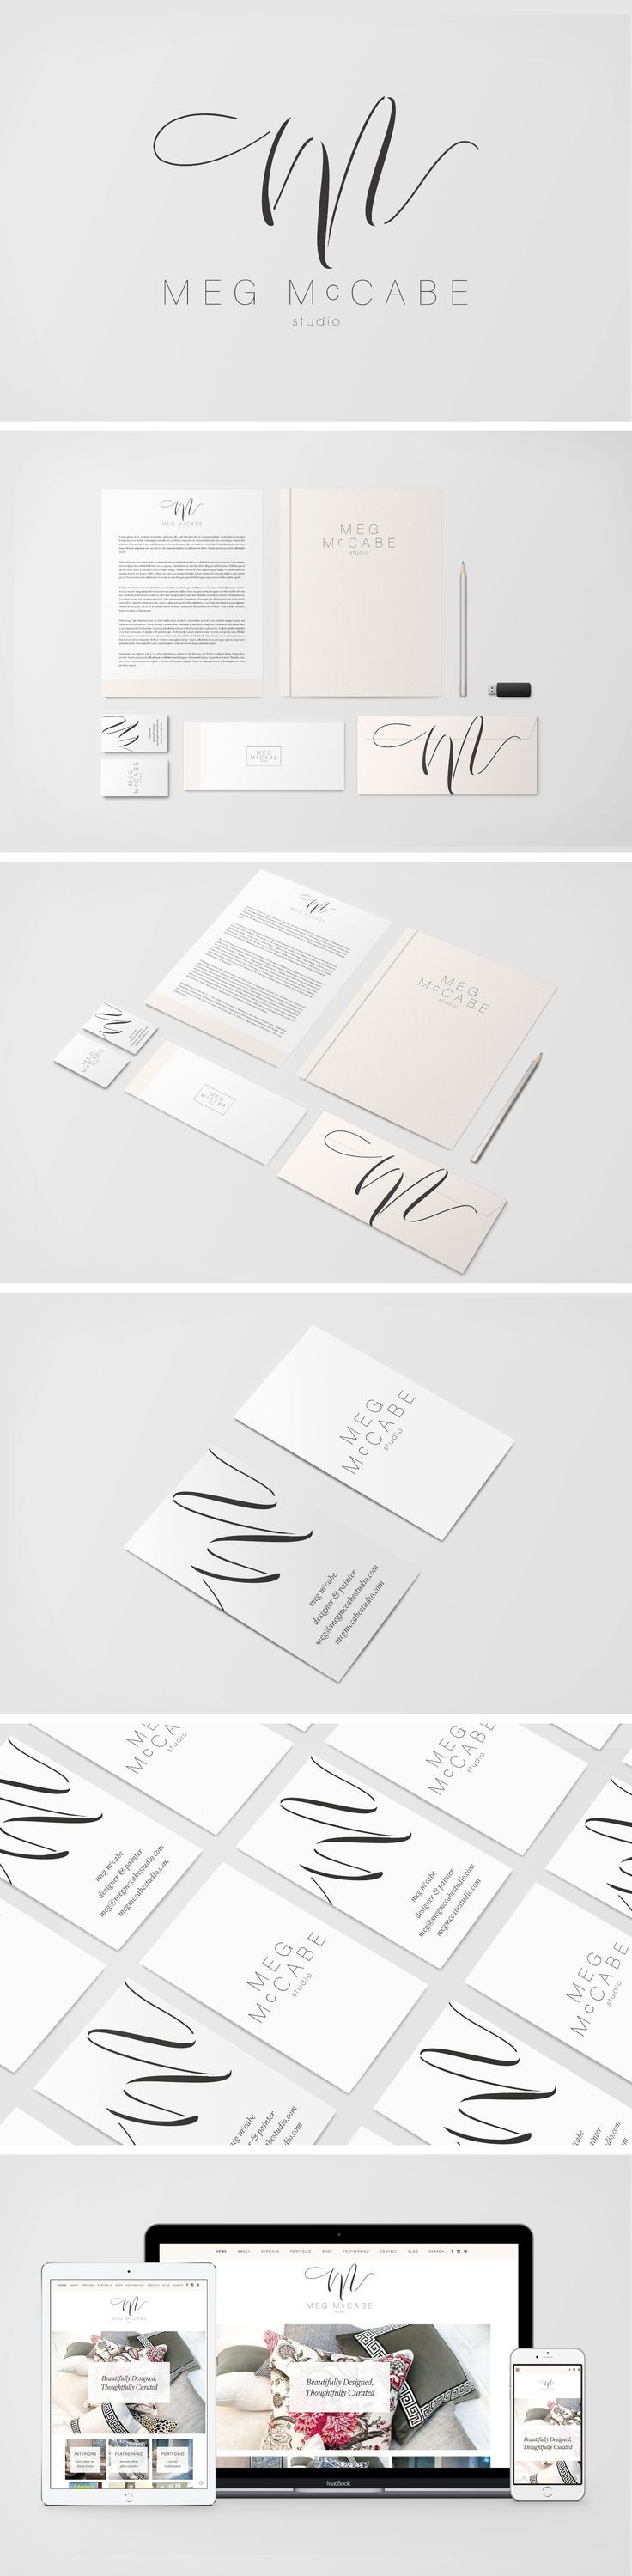 Brand Identity and Logo Design for Meg McCabe Studio